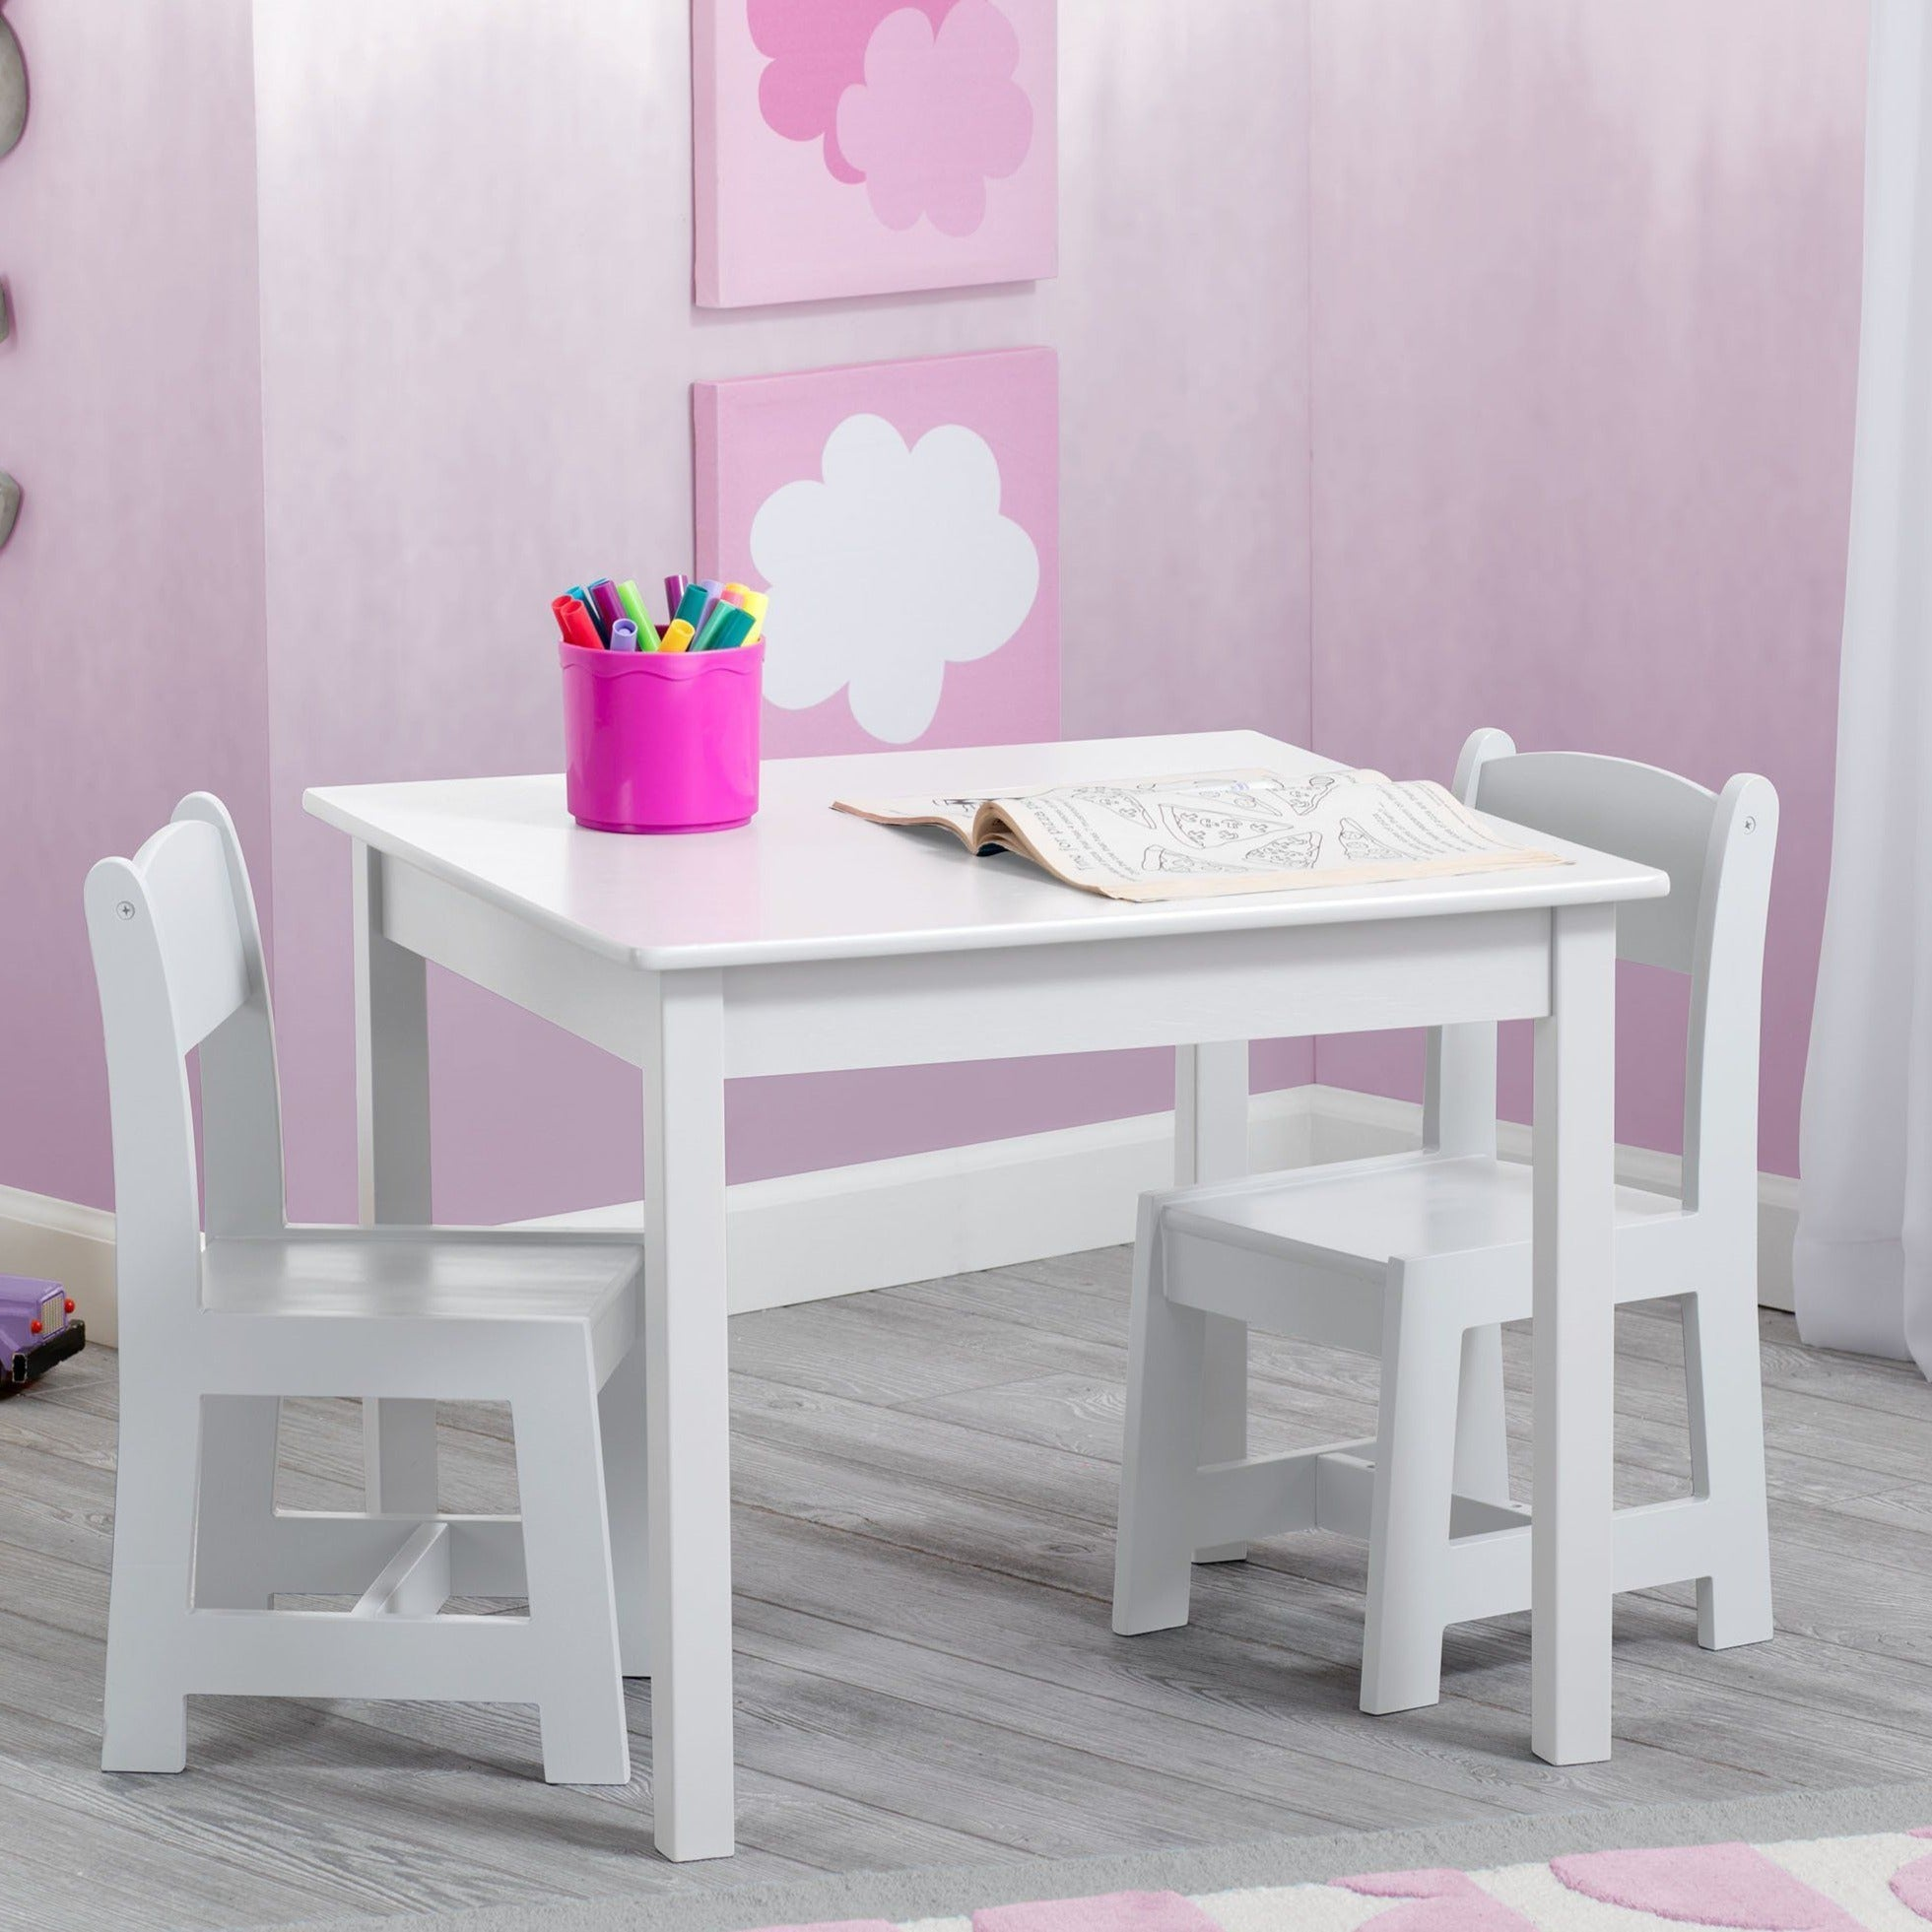 Delta Children Bianca White (130) MySize Table & Chairs Set, Room, b1b